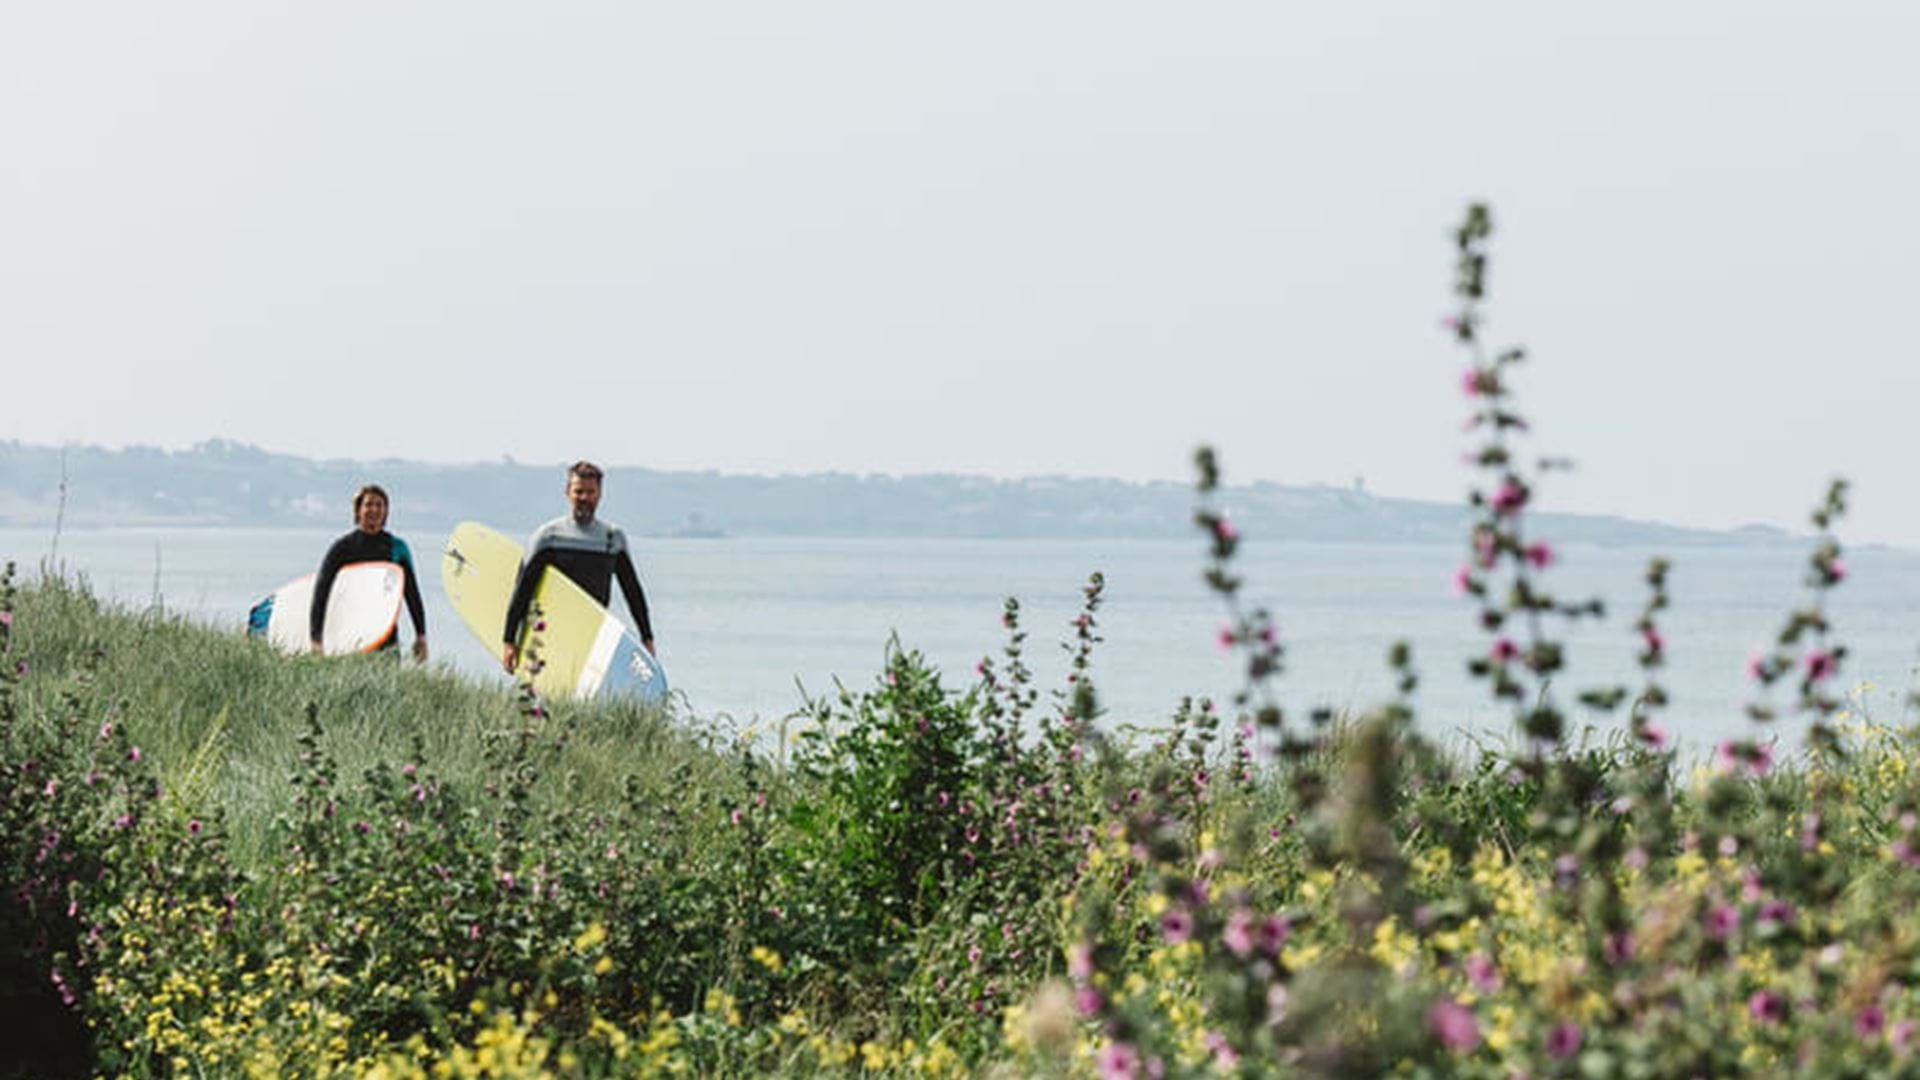 two-surfers-walking-in-st-ouens-bay-jersey